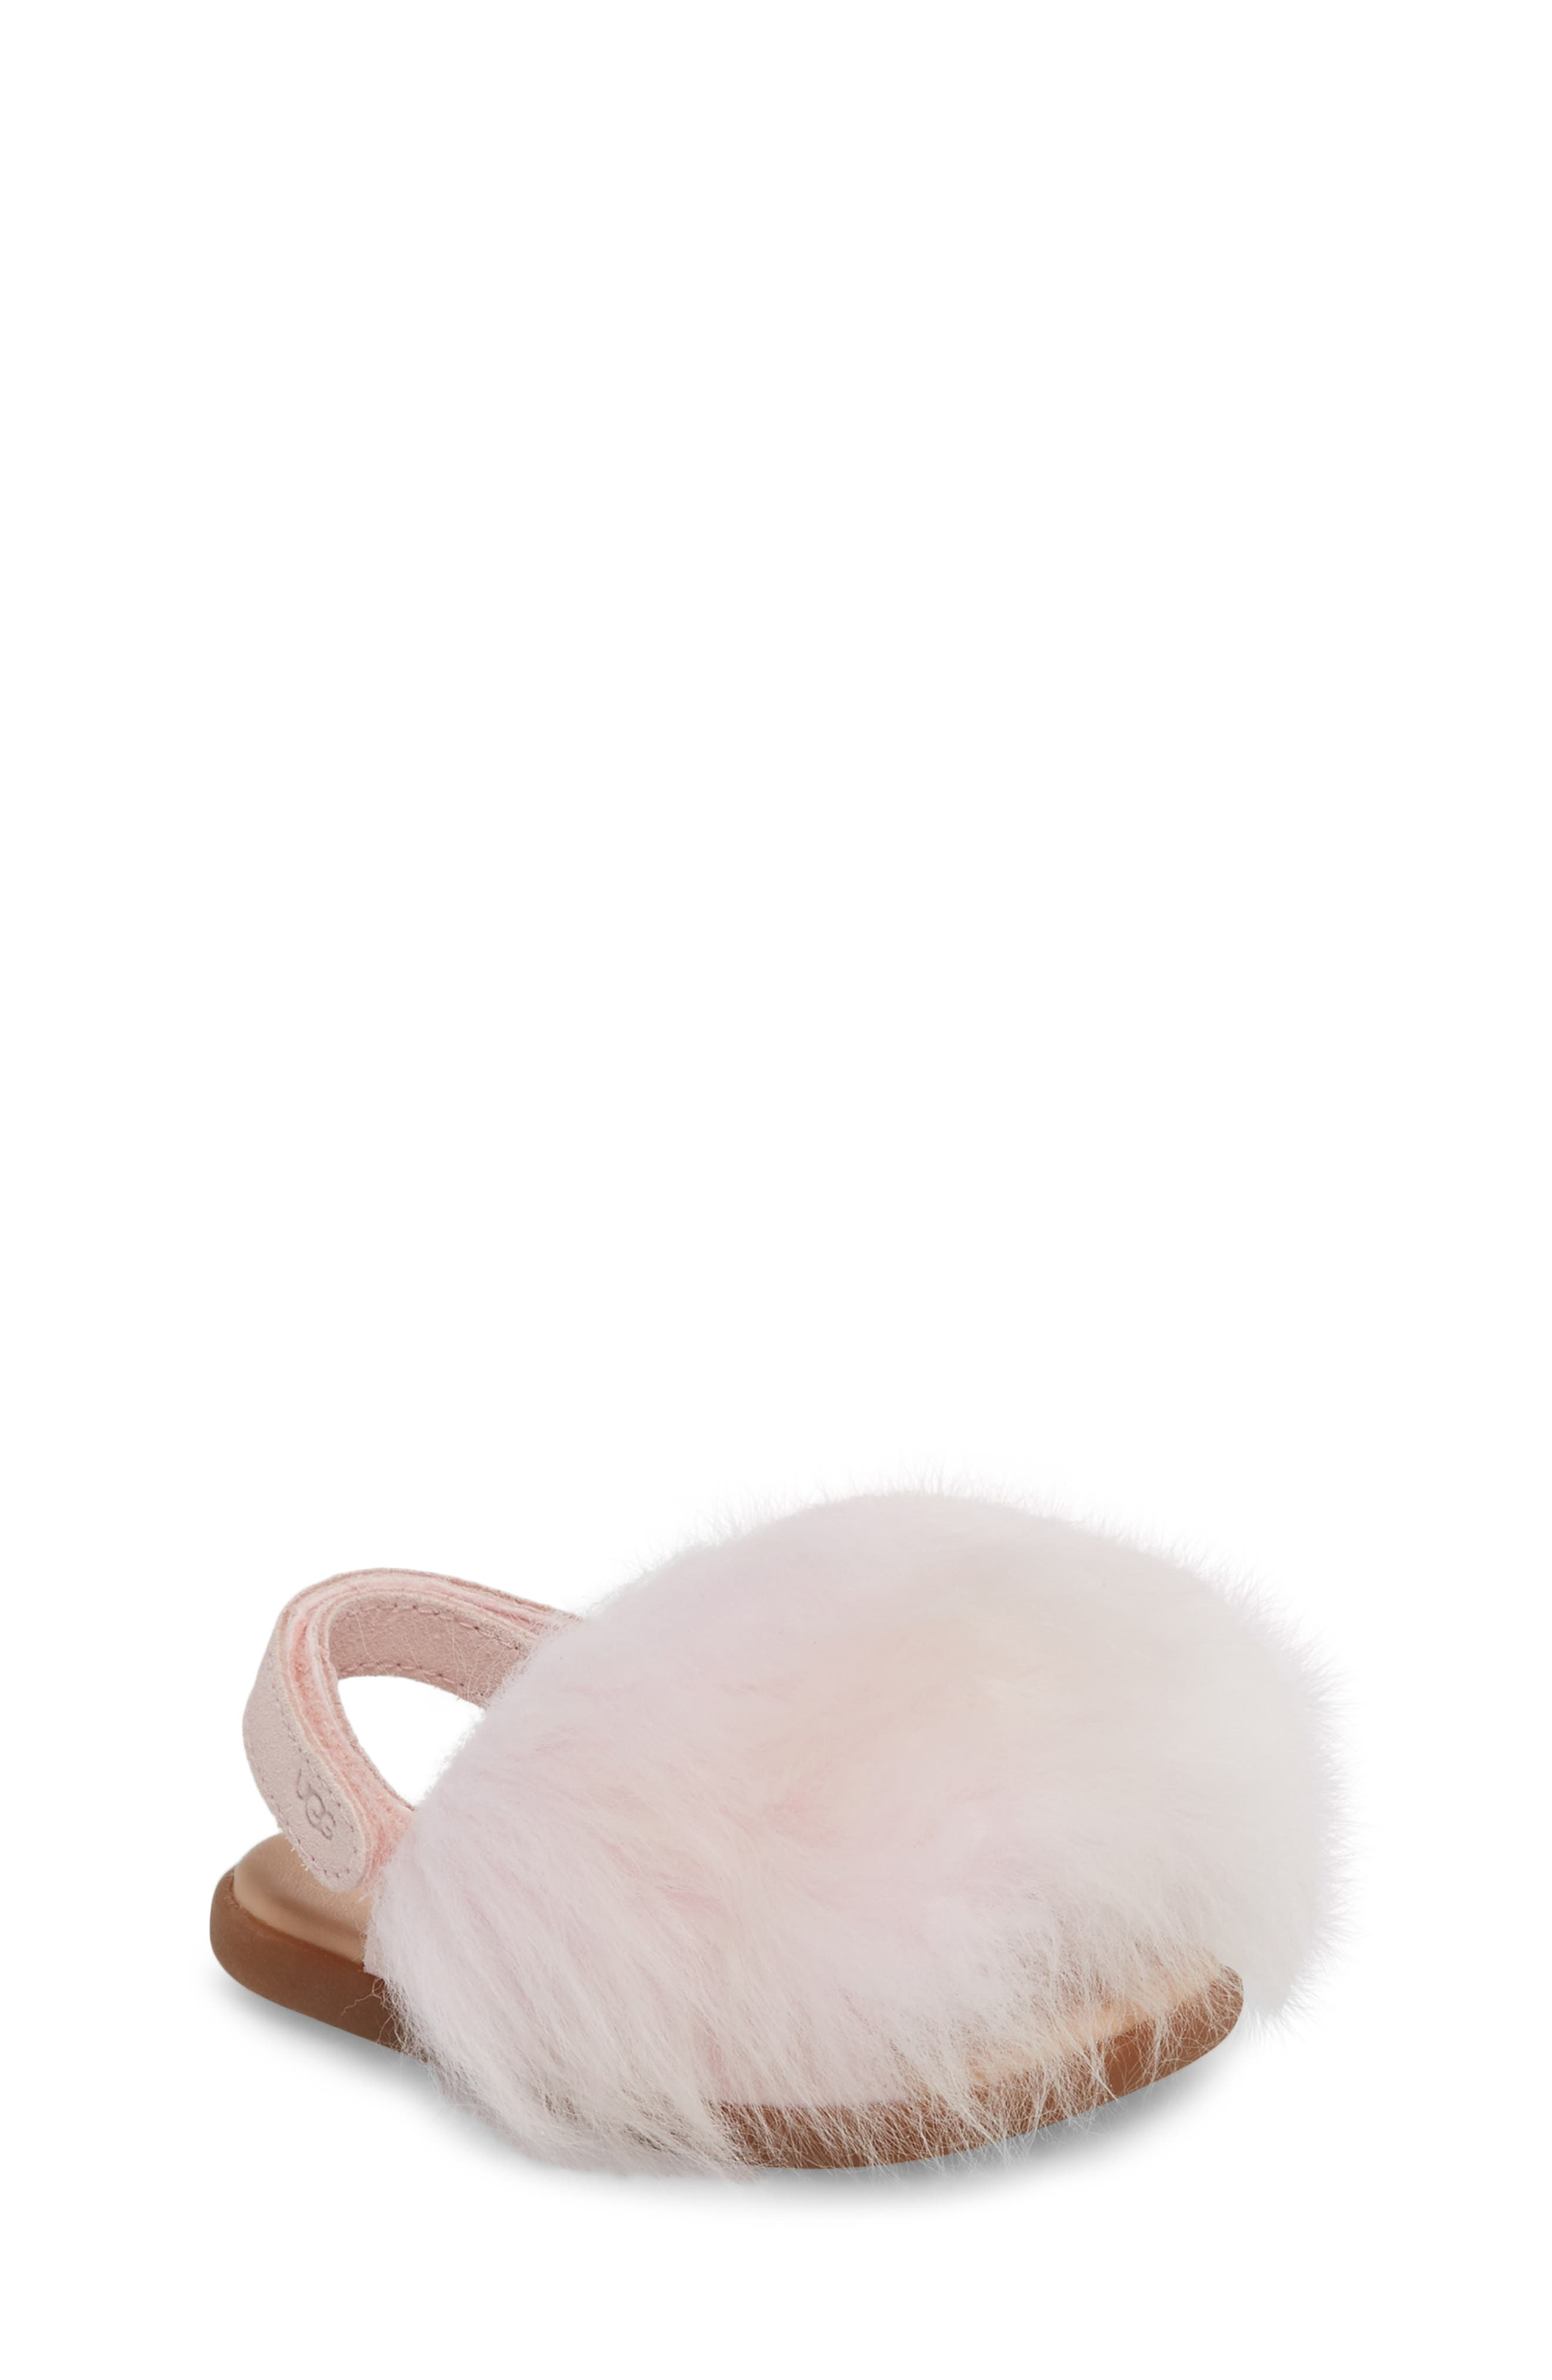 Holly Genuine Shearling Sandal,                             Main thumbnail 1, color,                             SEASHELL PINK